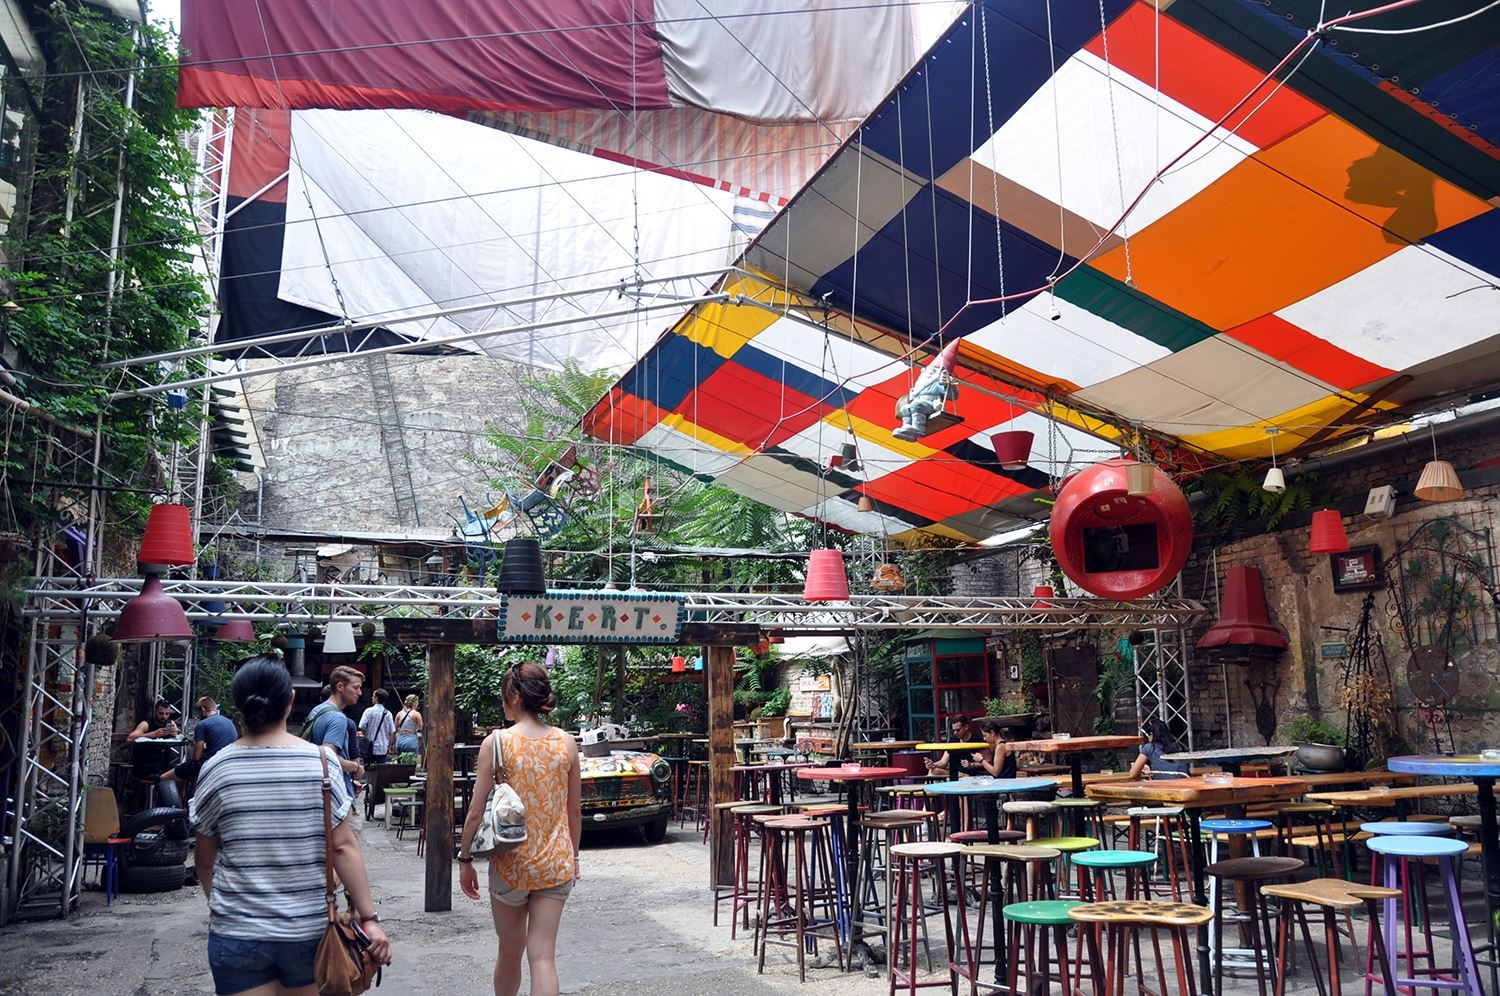 Szimpla Kert Farmers Market Things to Do in Budapest Travel